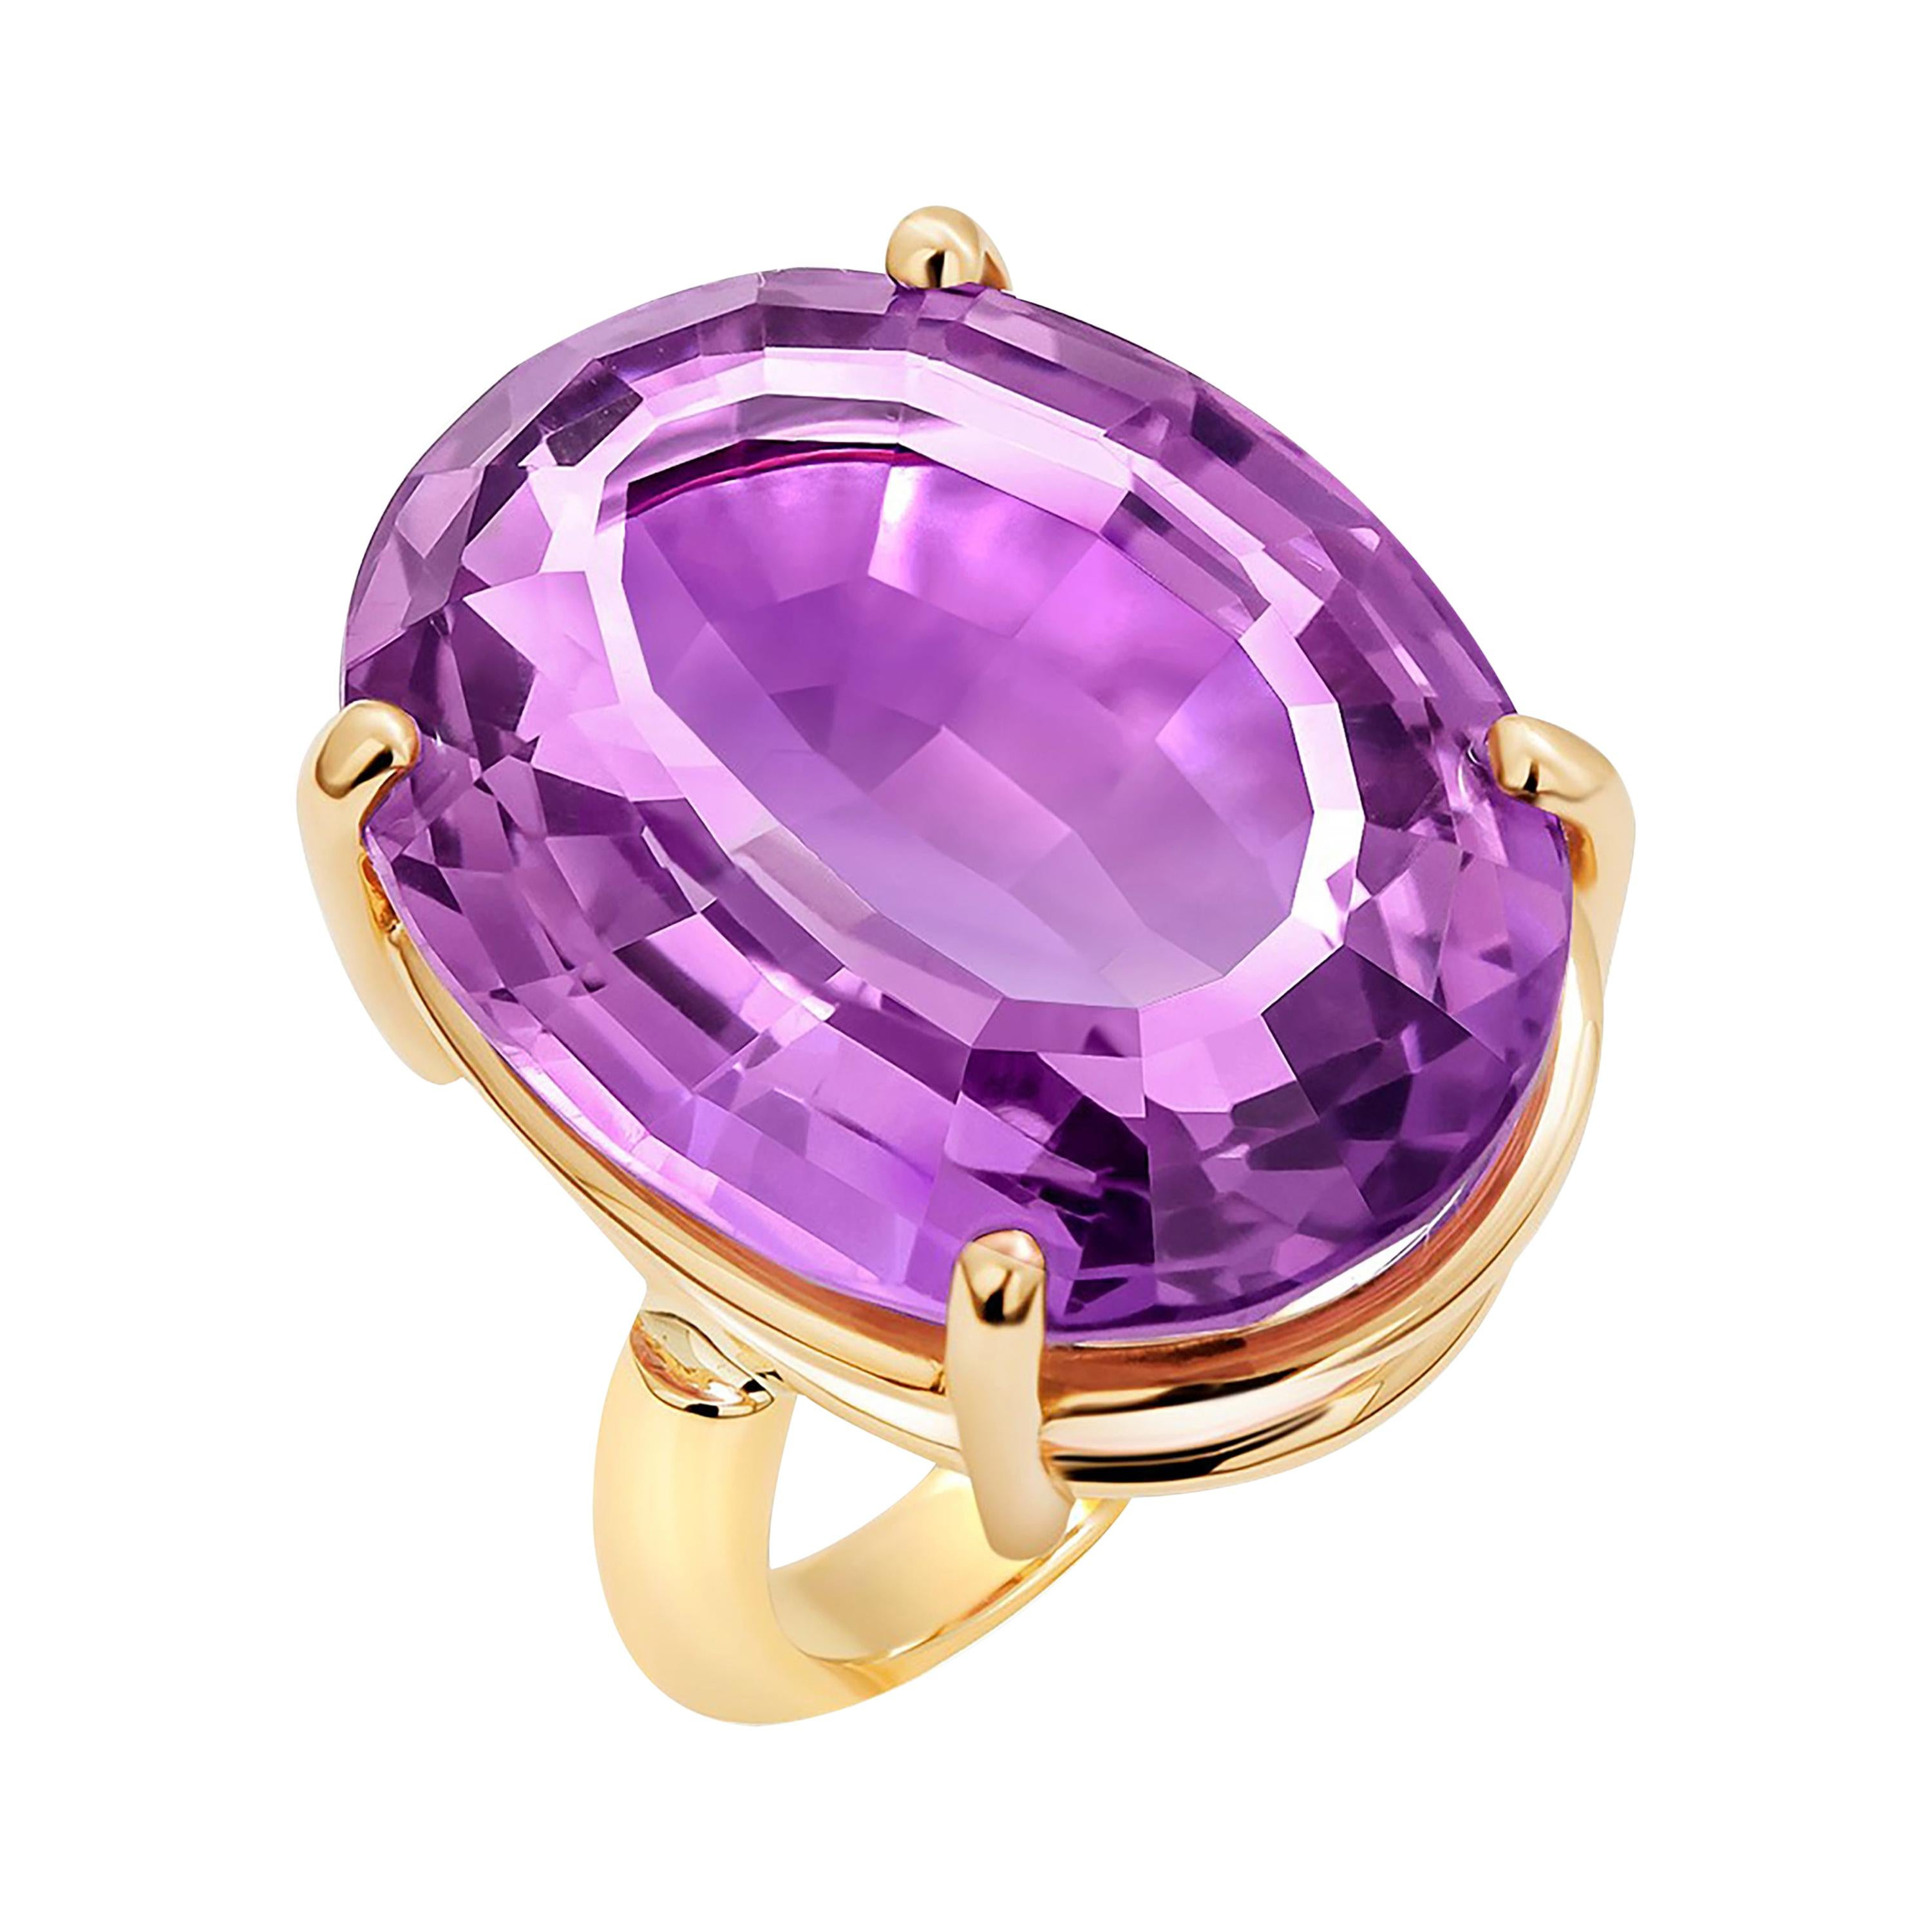 Cushion Amethyst 23.91 Carats Raised Dome Yellow Gold Cocktail Ring